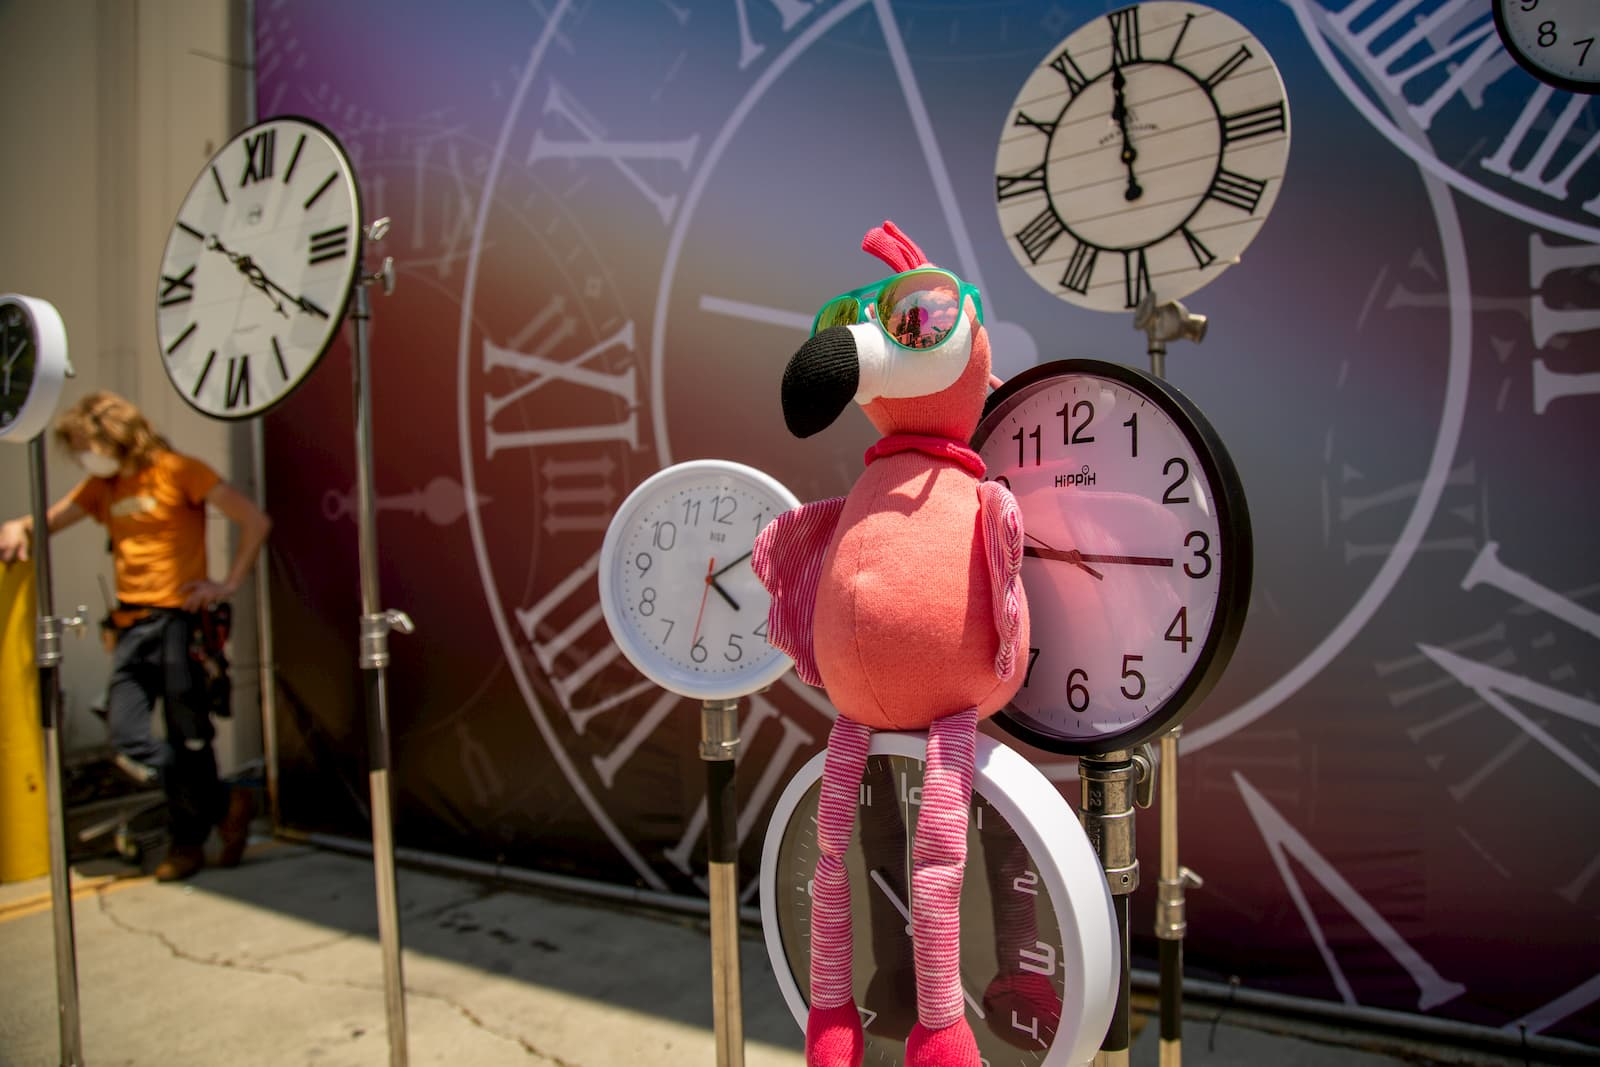 flamingo wearing goodr sunglasses and clocks